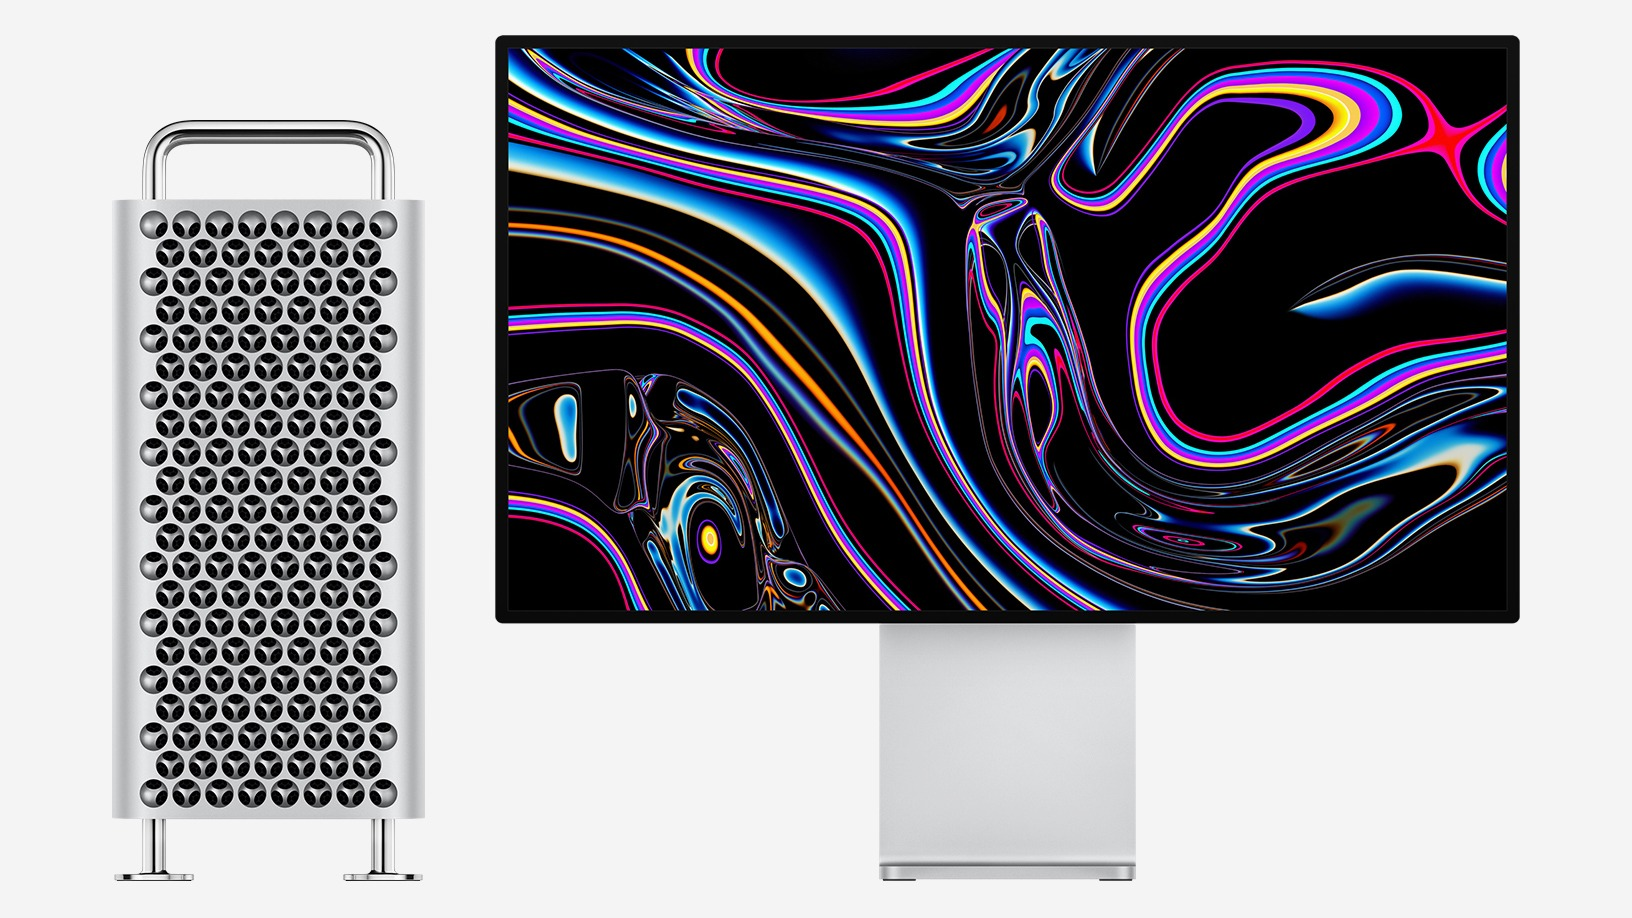 The new Mac Pro and Pro Display